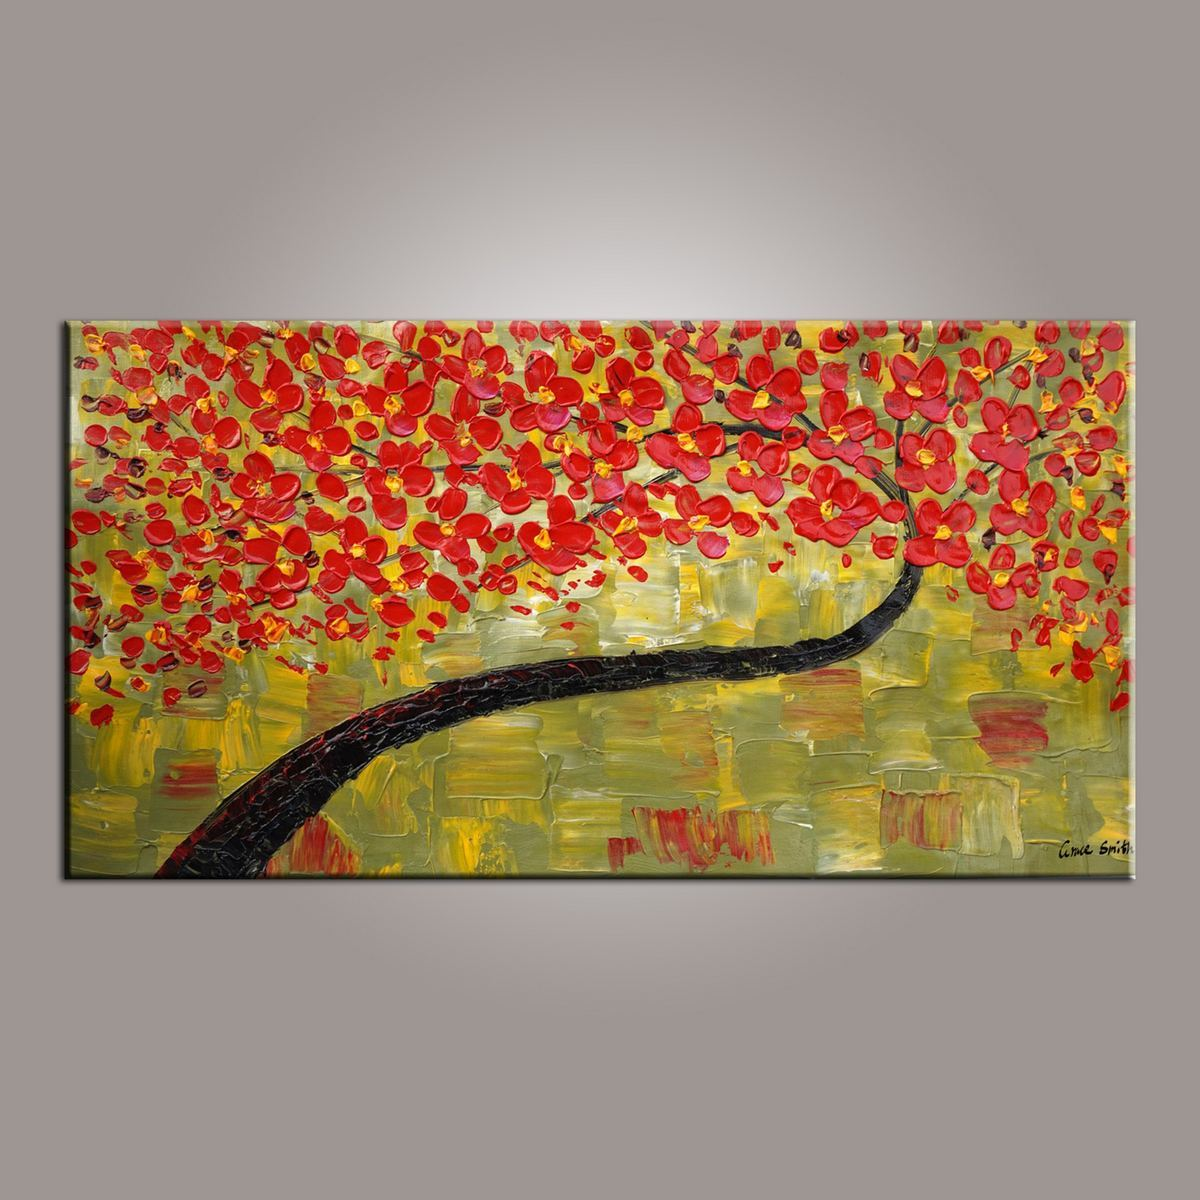 Painting on sale canvas art red flower tree painting abstract art painting